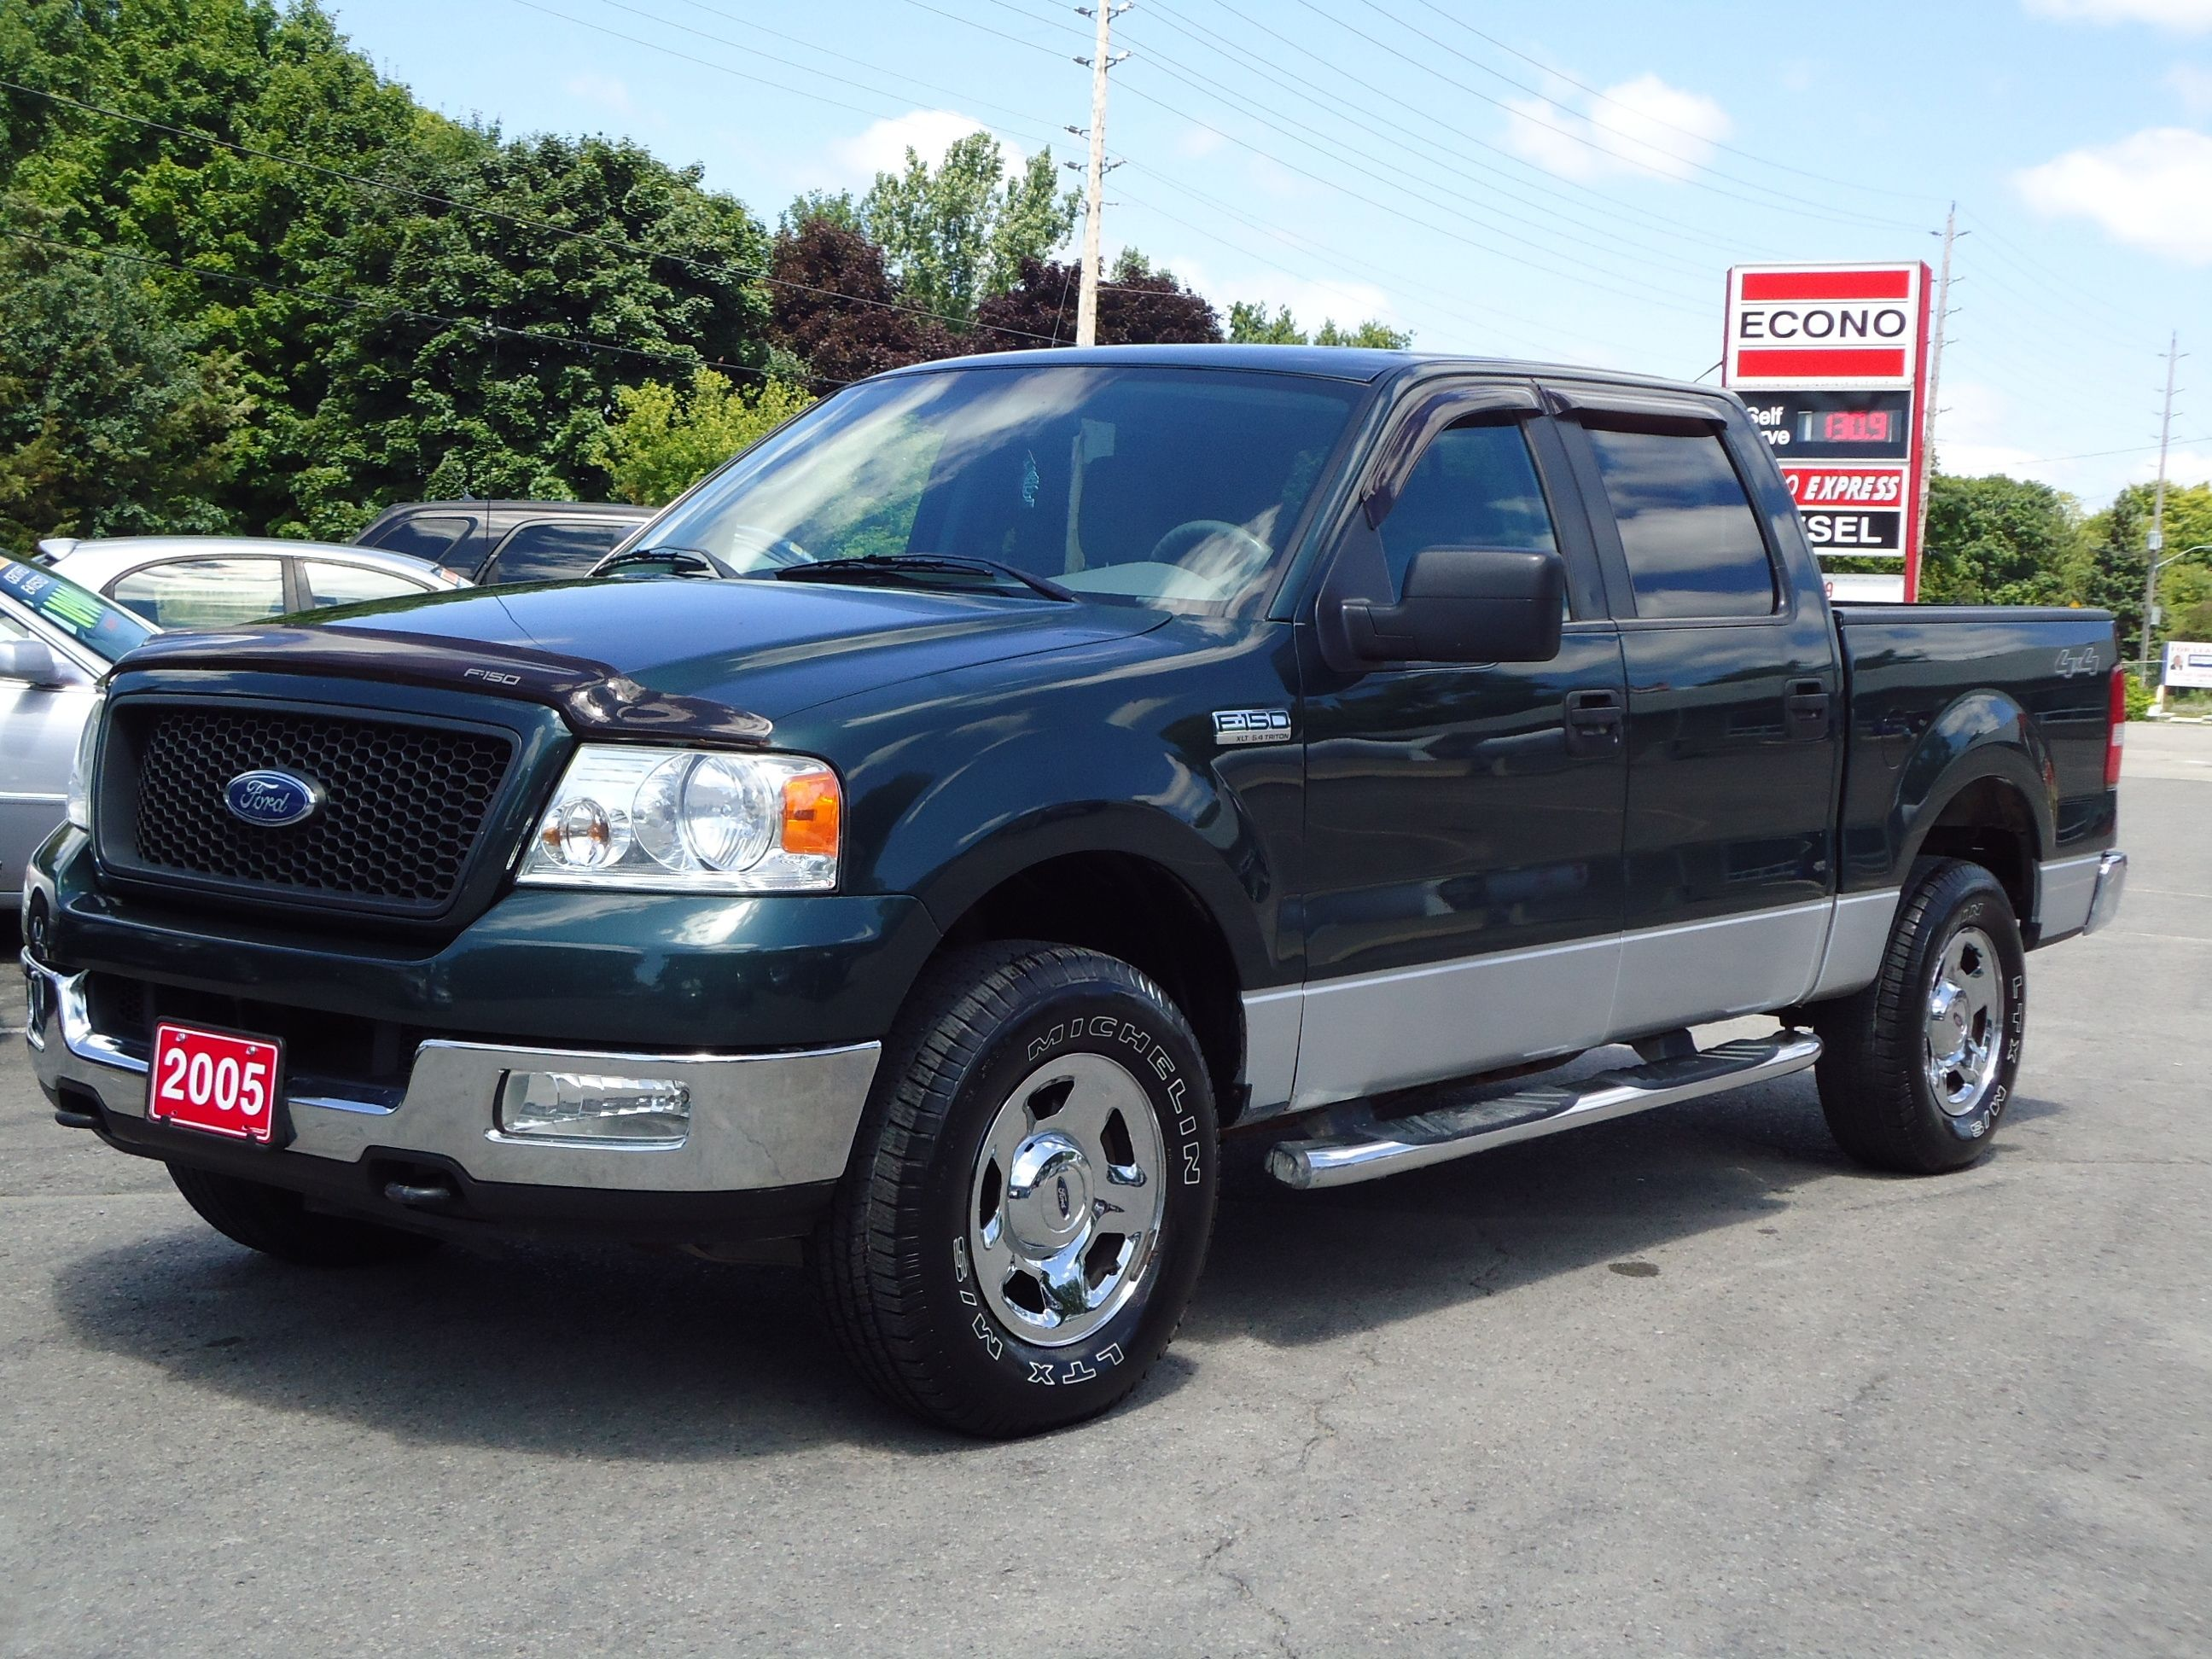 The 12 Best 2005 Ford F150 Xlt Ford F150 Xlt Ford F150 F150